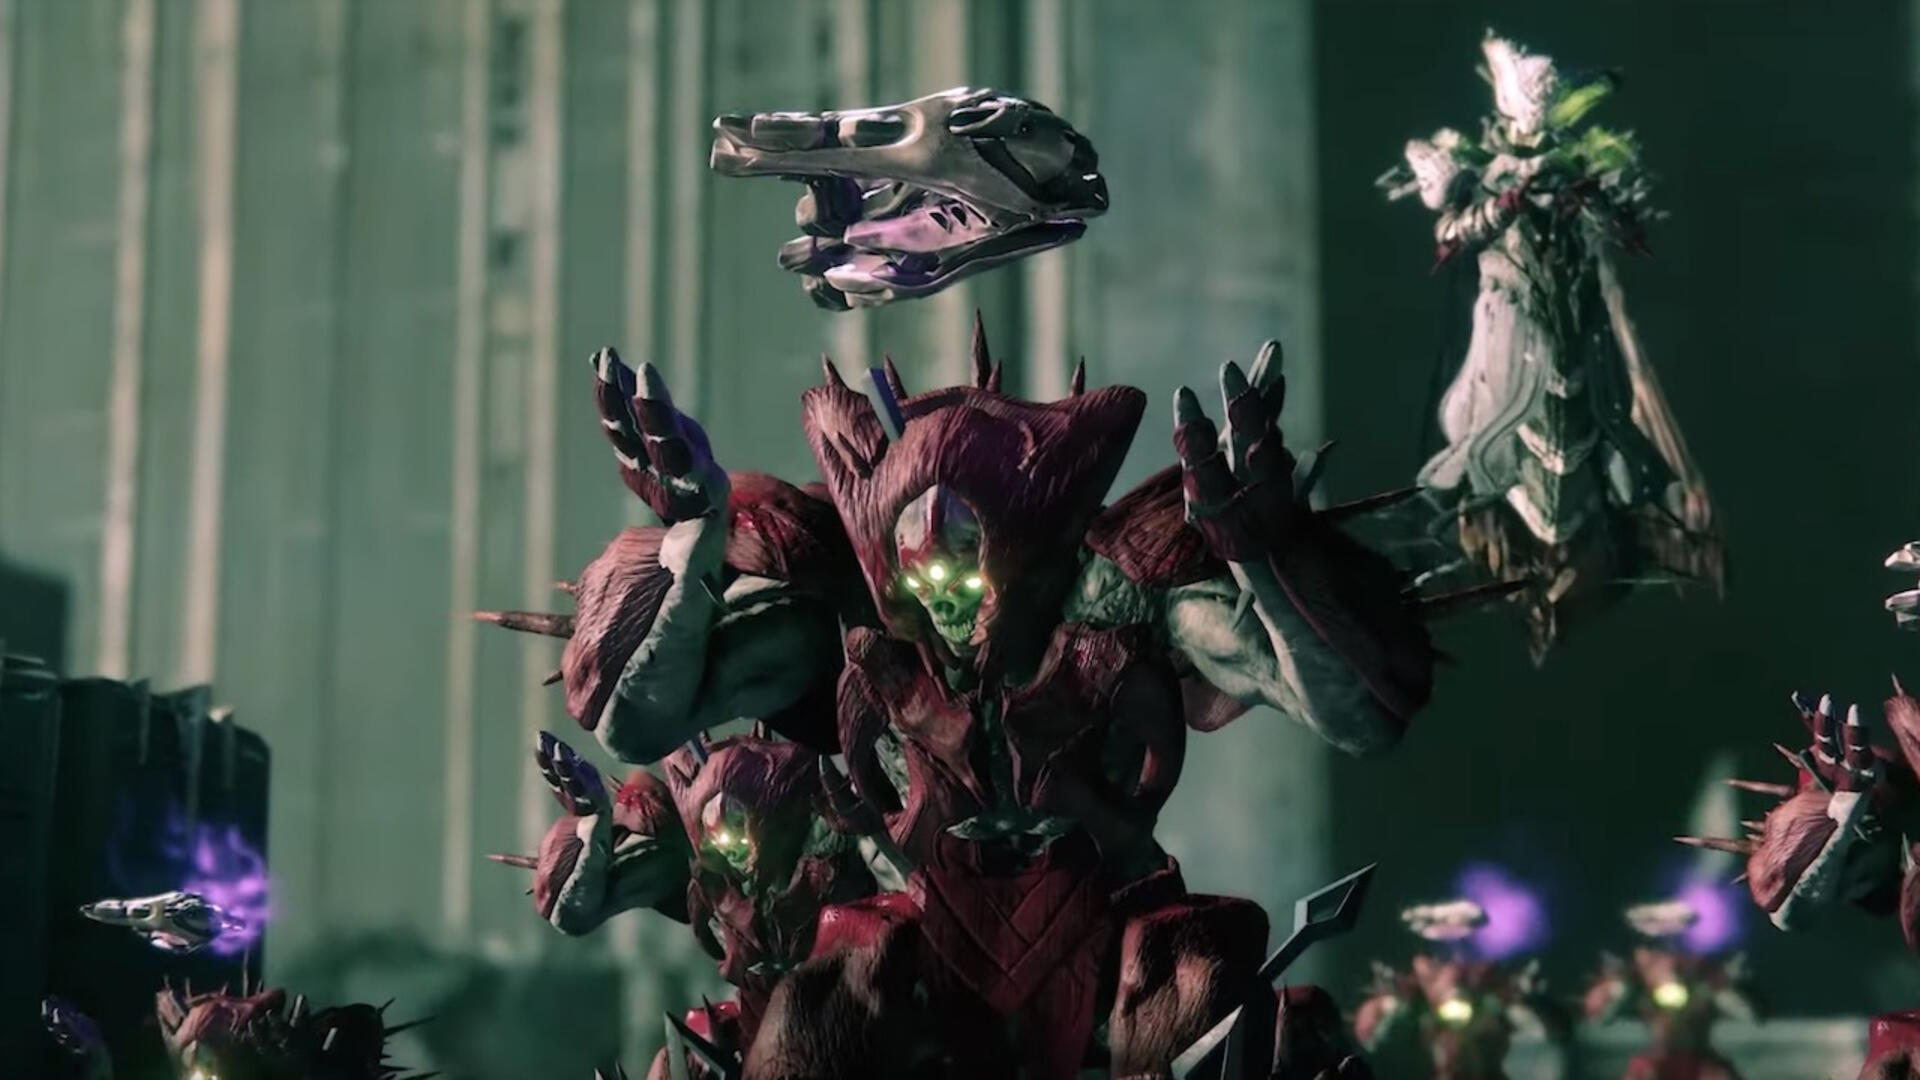 Destiny 2: Shadowkeep's Launch Trailer Has Moon Battles, Tanks... and Beck